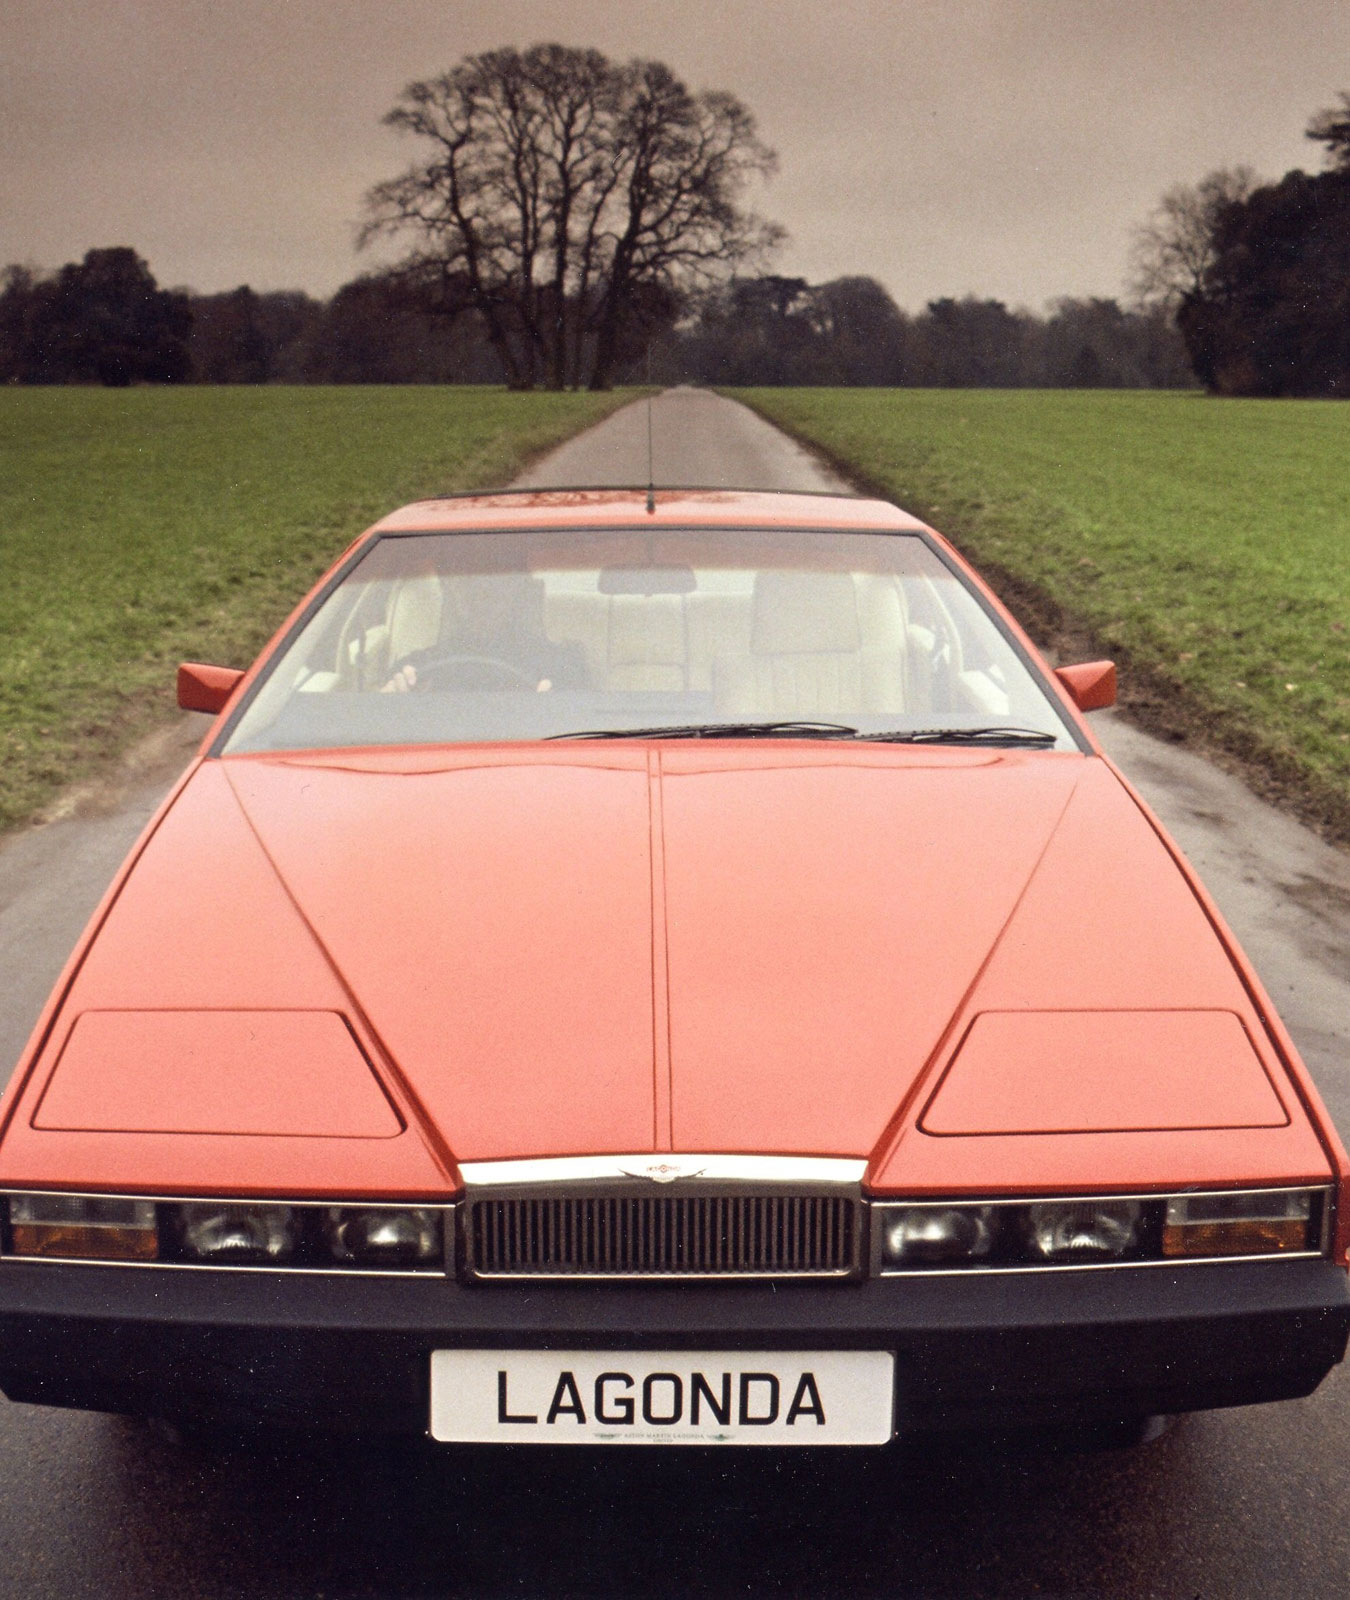 1976 Aston Martin Lagonda Car Body Design